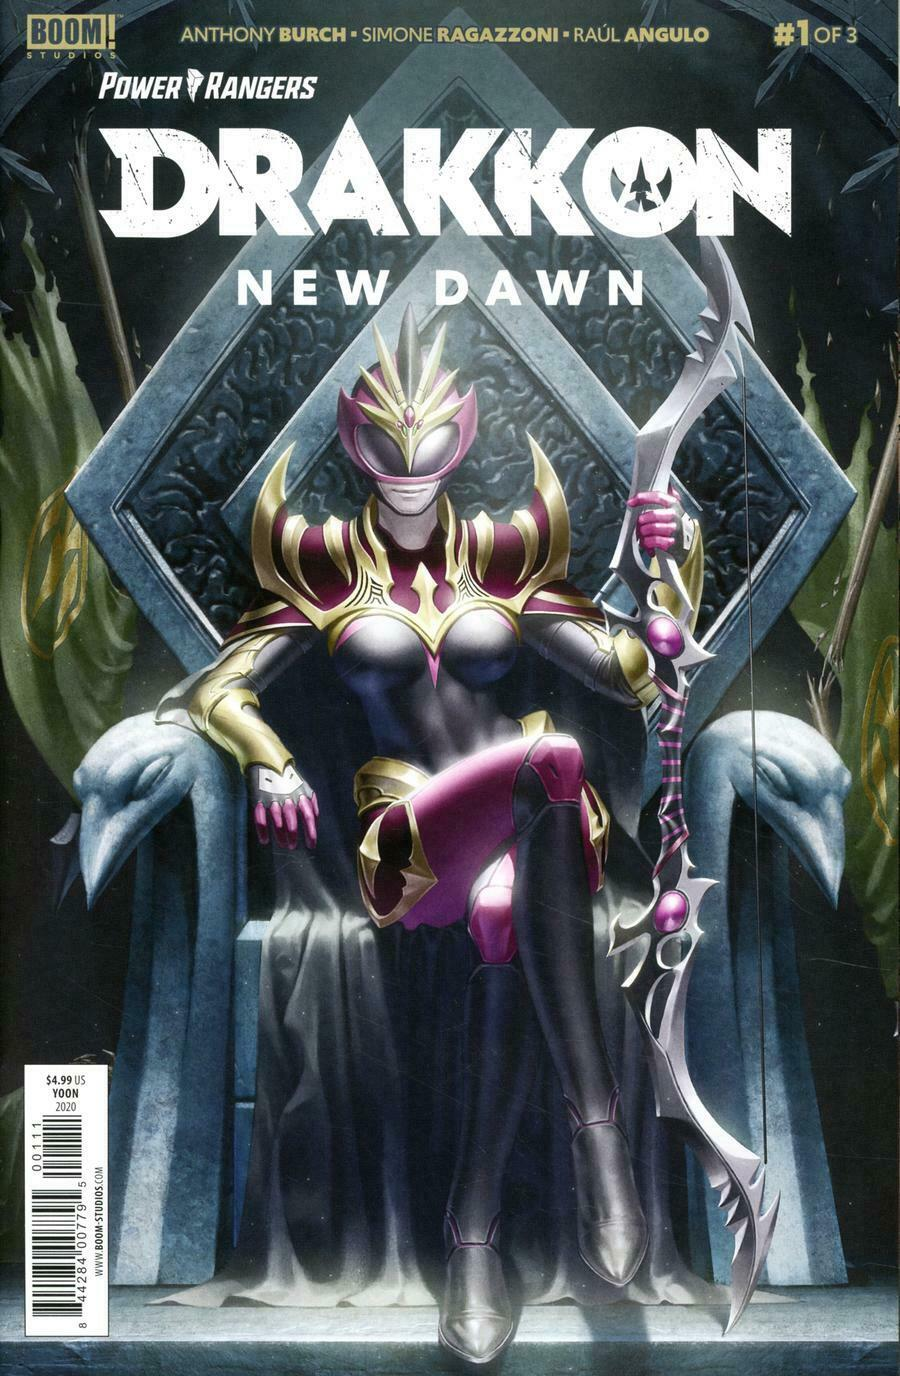 Power Rangers Drakkon New Dawn #1